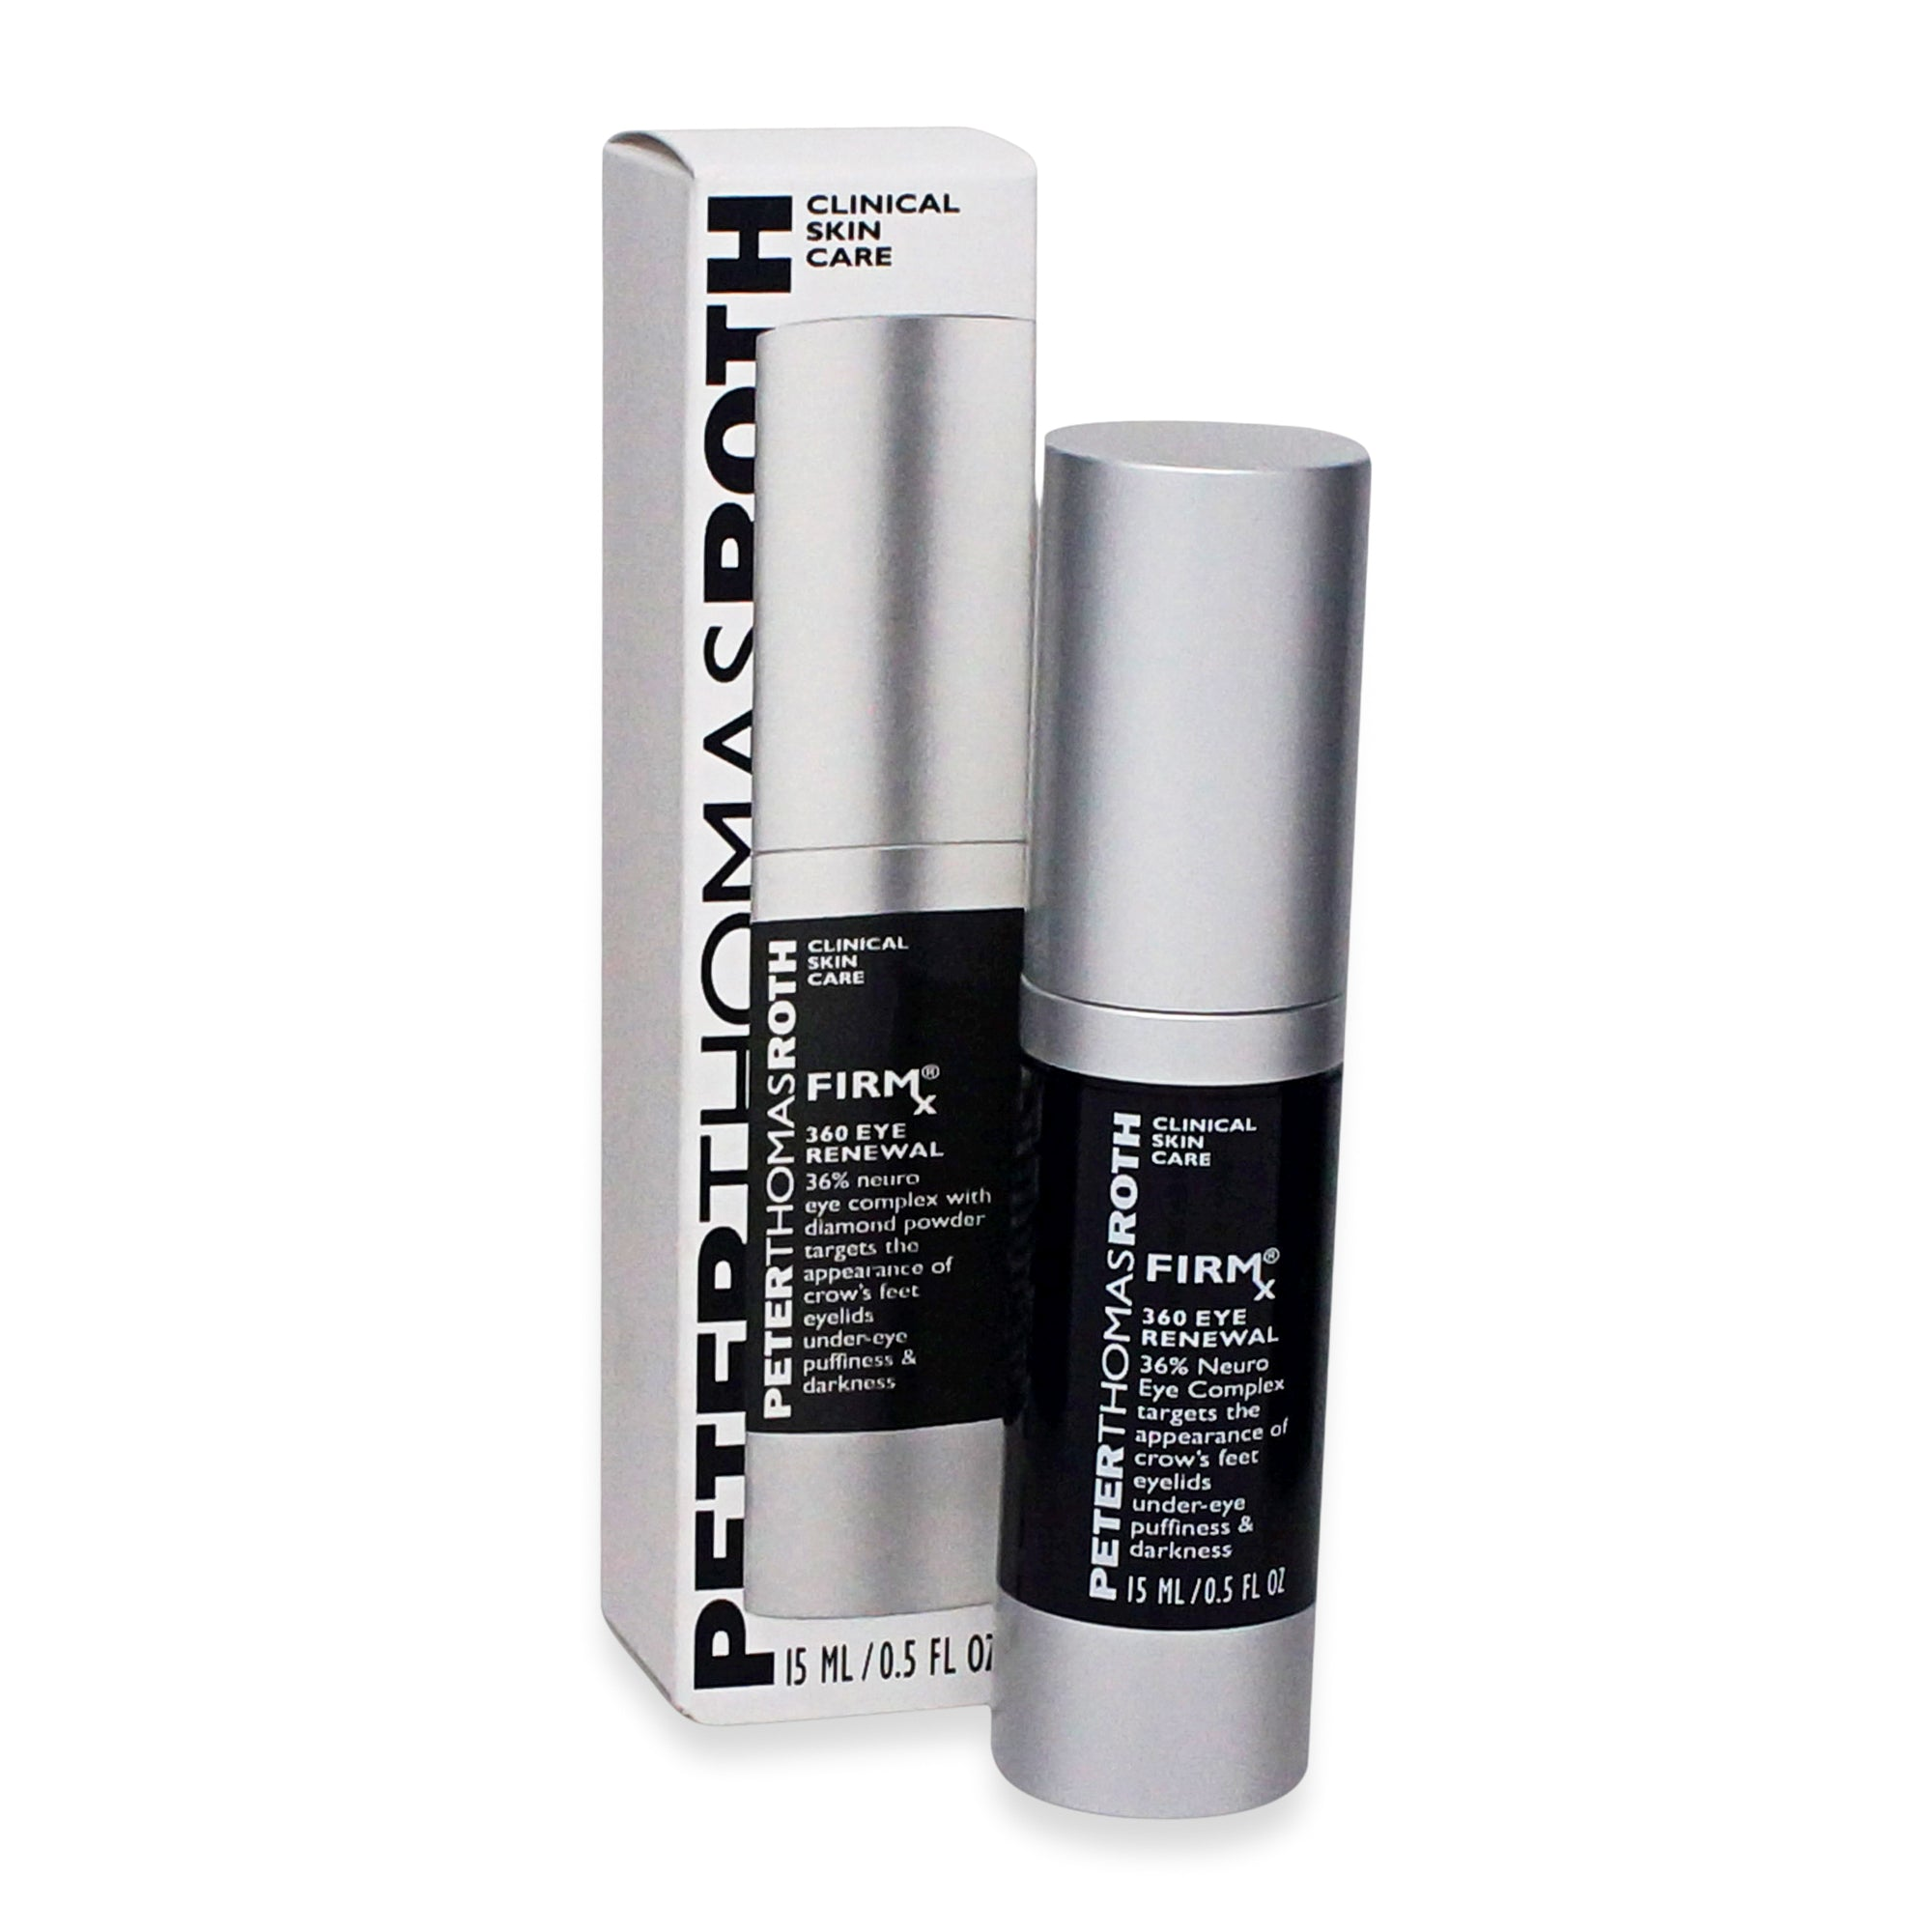 PETER THOMAS ROTH ~ FIRMX 360 EYE RENEWAL ~ 0.5OZ